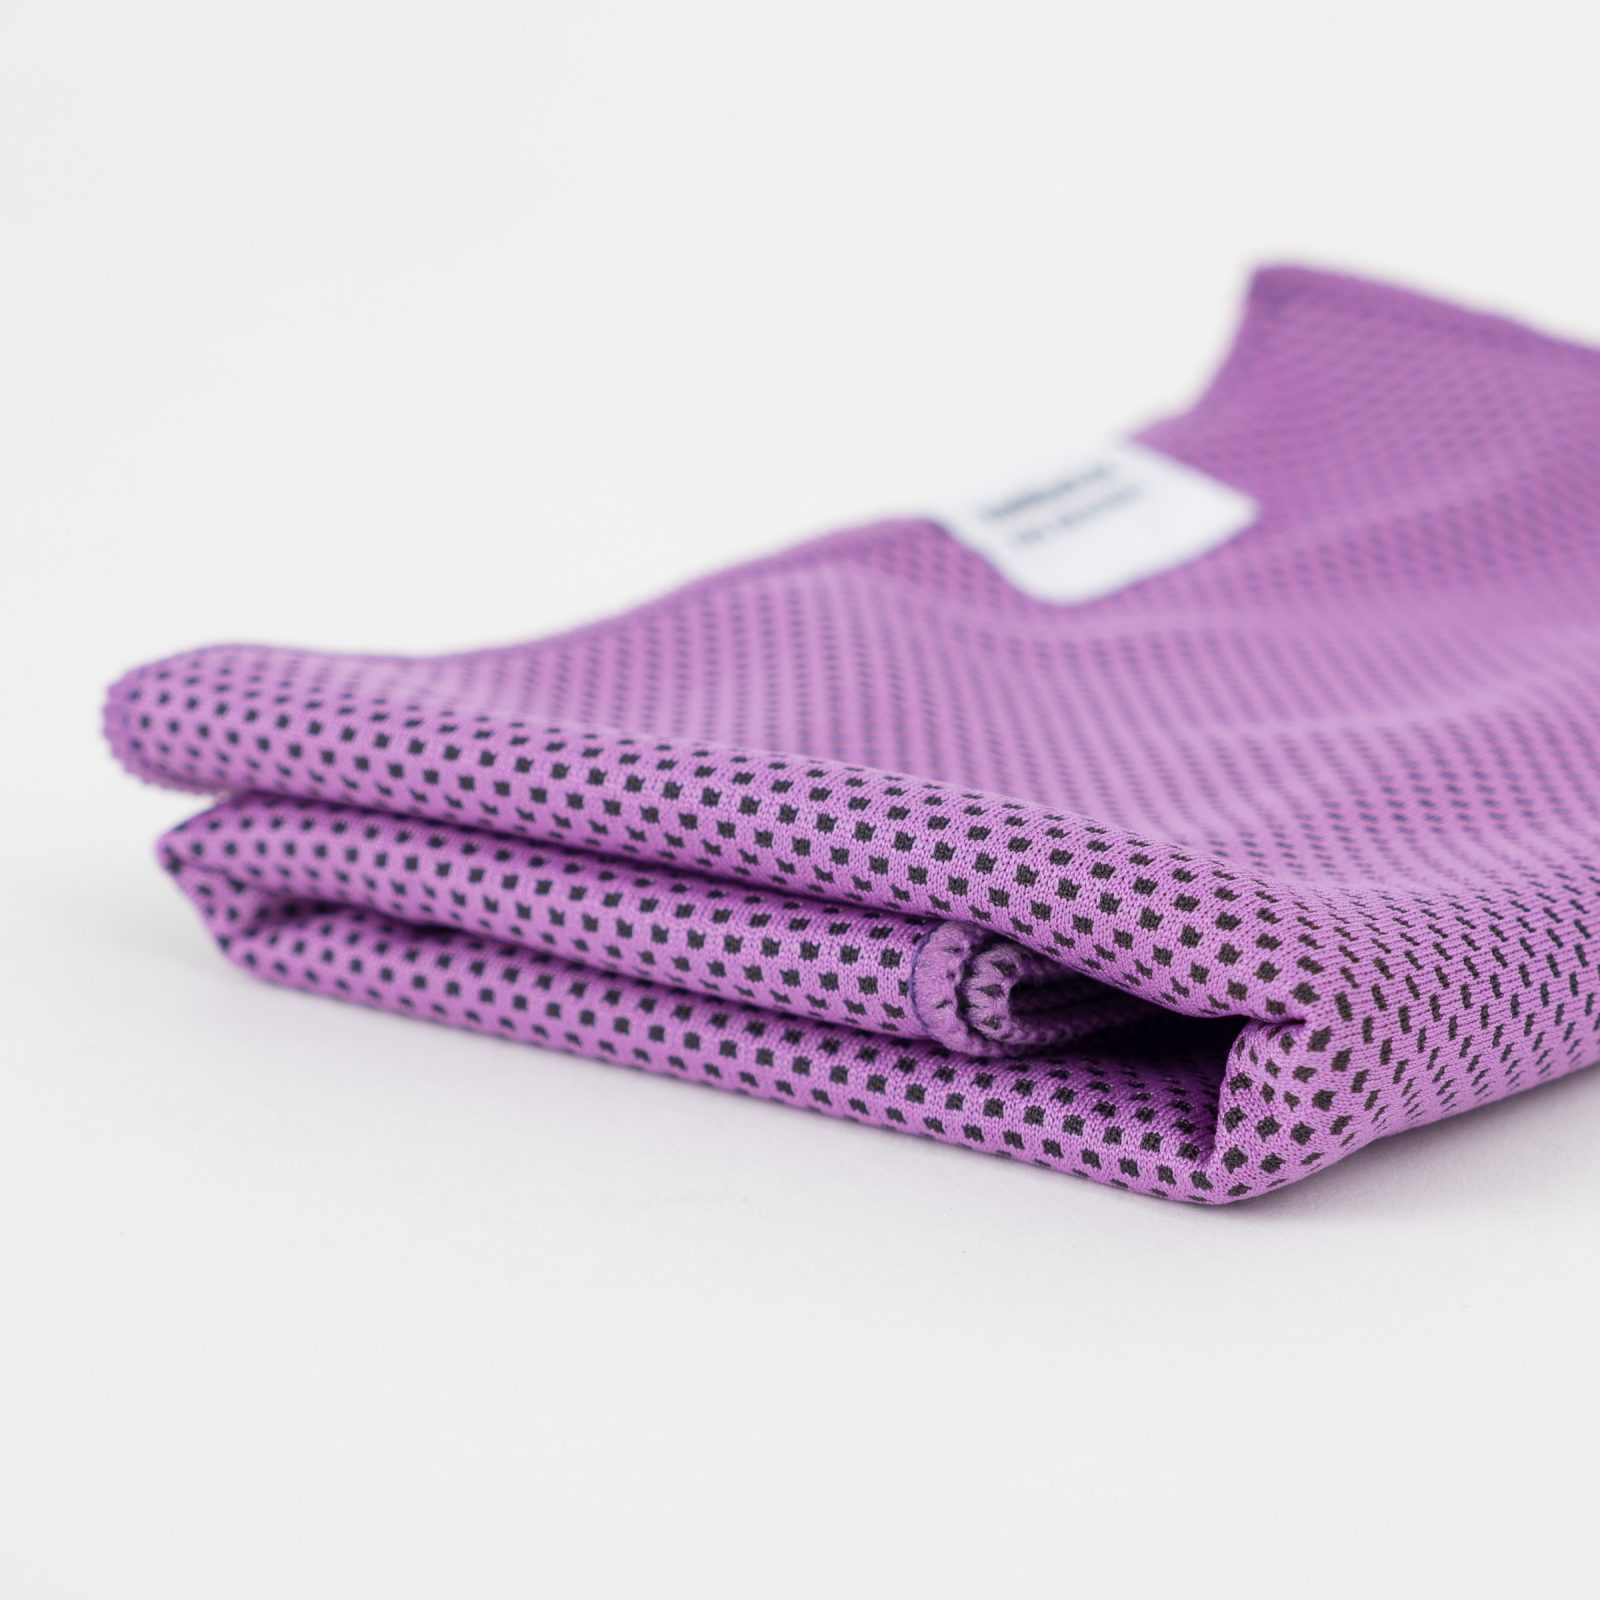 Kuehltuch flieder lila purple